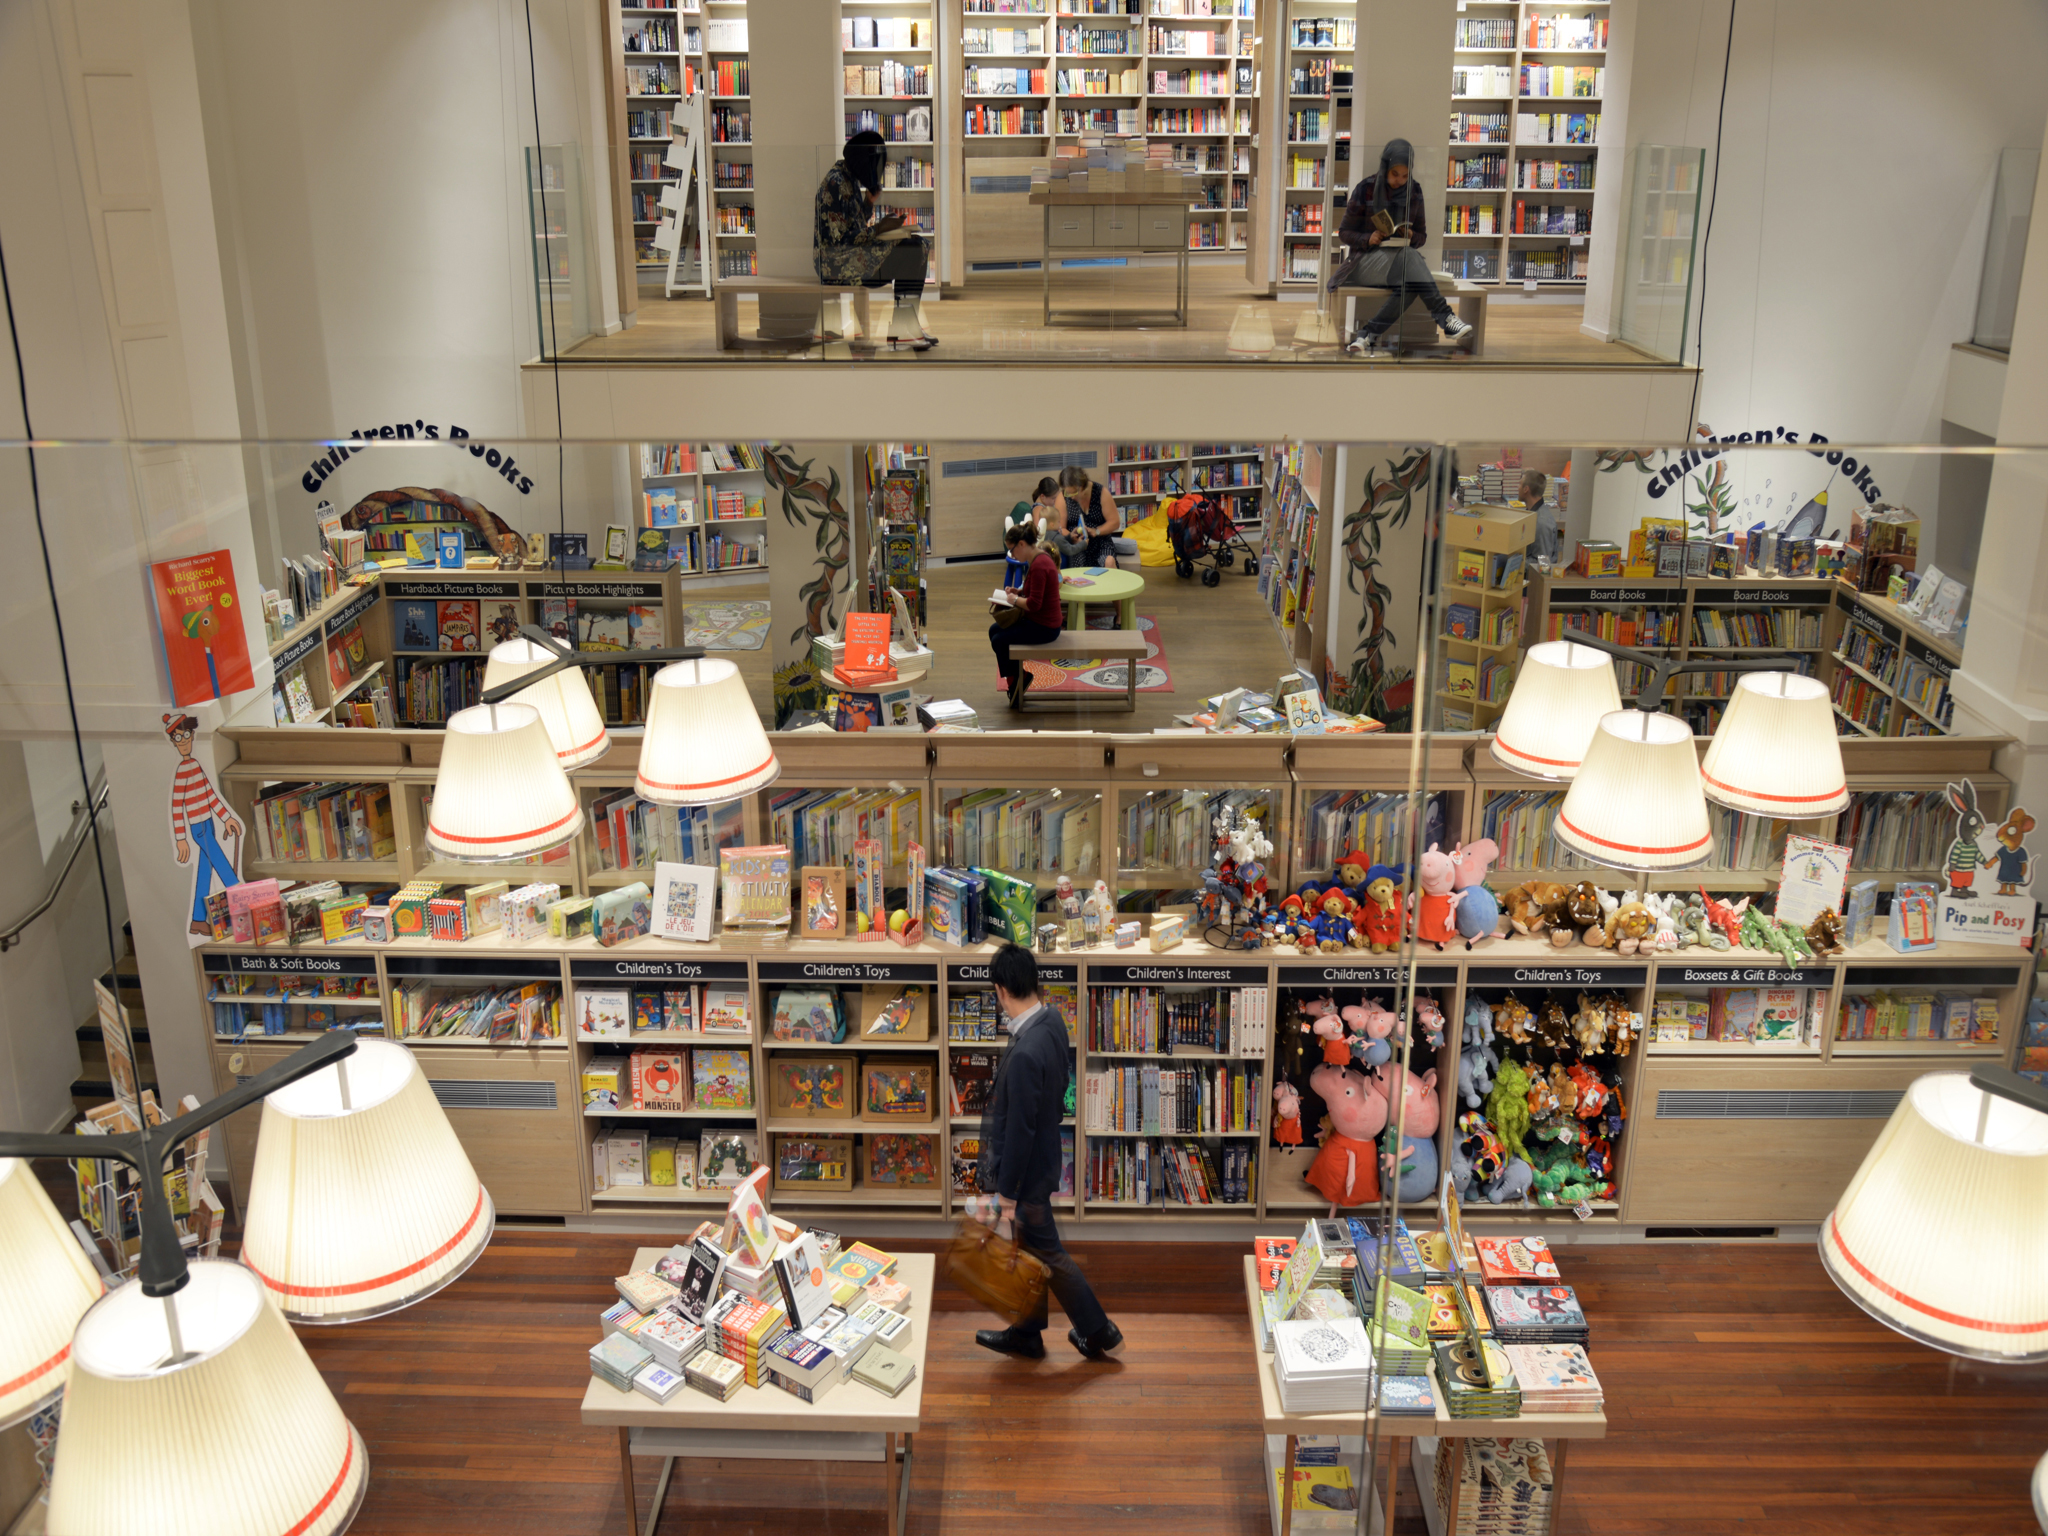 Browse more than 200,000 titles at Foyles' flagship branch